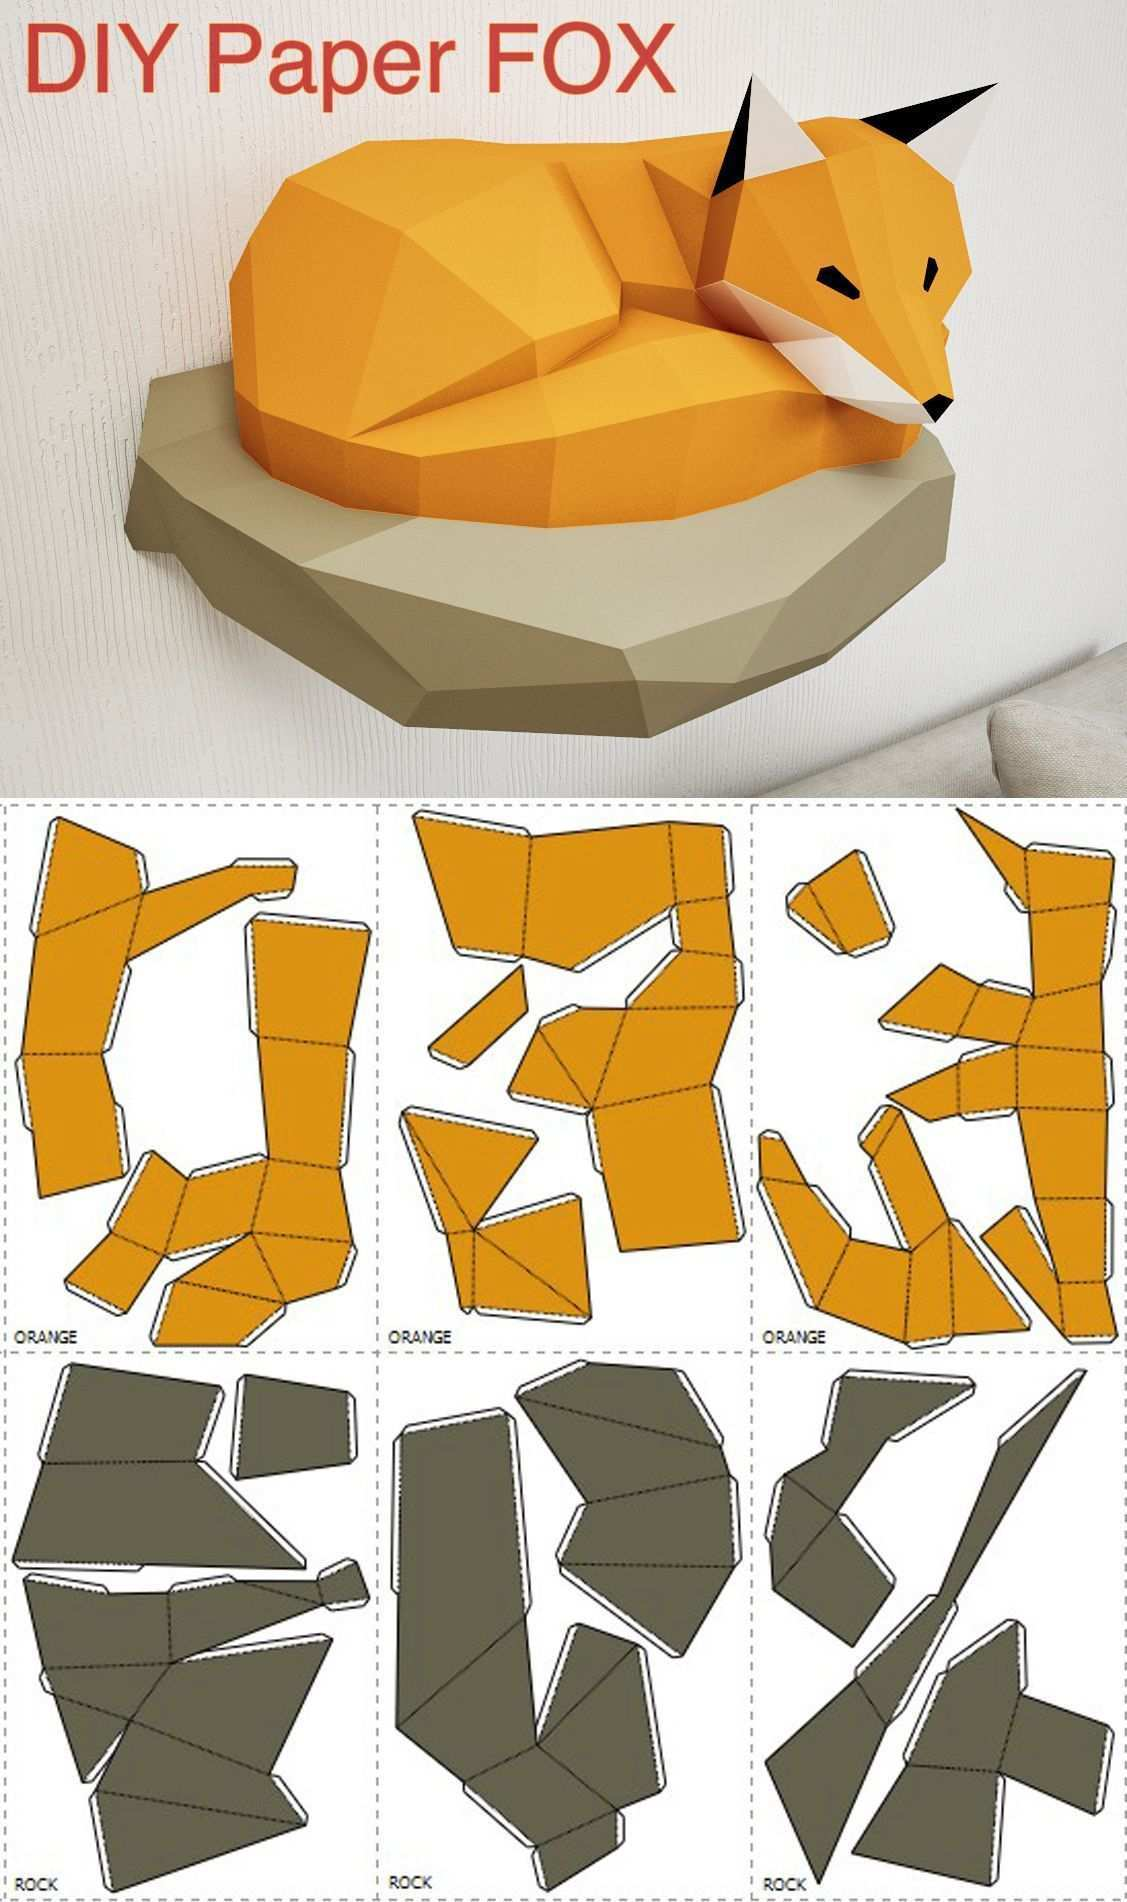 Papercraft Fox On Rock Paper Model 3d Paper Craft Paper Sculpture Pdf Template Low Poly Animals Papercraft Wall Home Decor Pepakura Kit In 2020 Paper Animals 3d Paper Crafts Paper Crafts